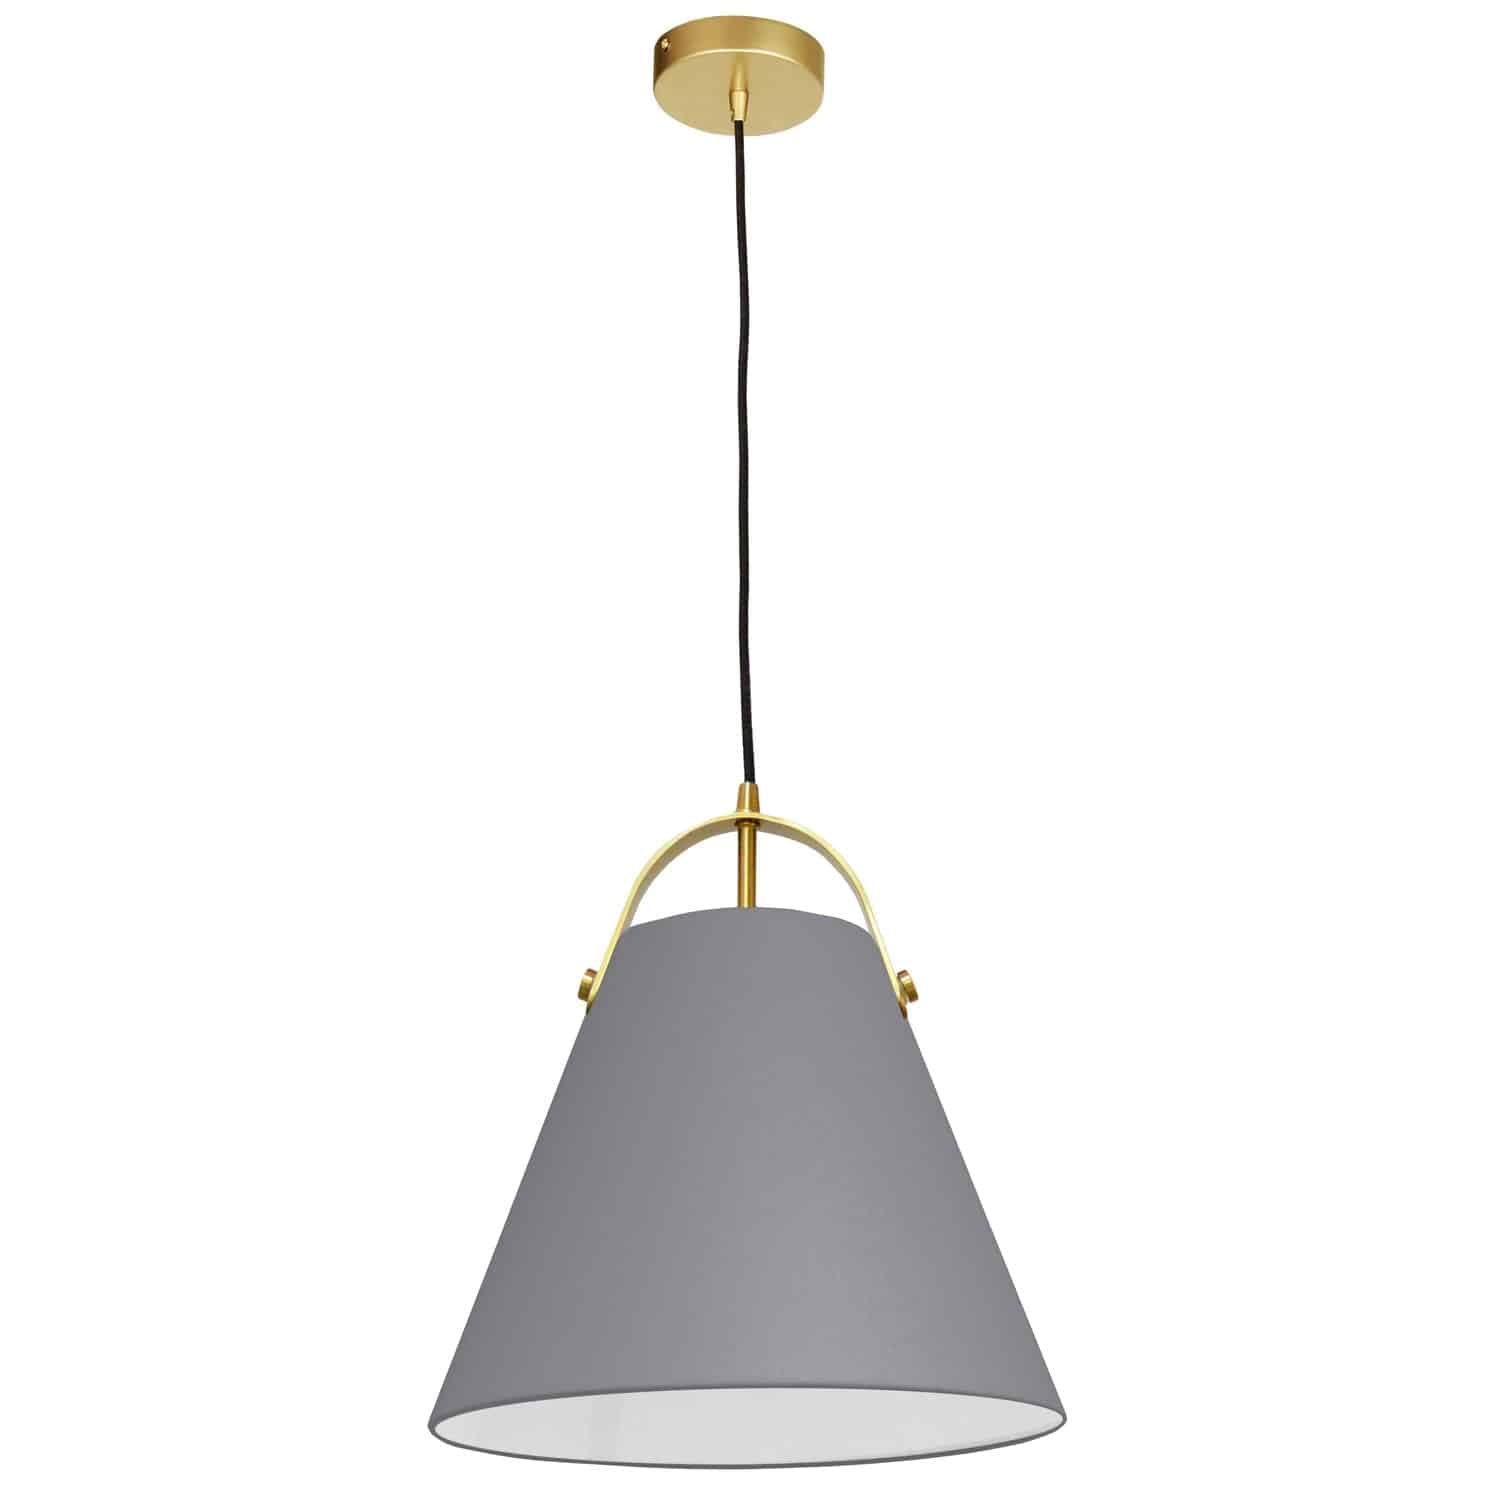 1 Light Emperor Pendant Aged Brass with Grey Shade